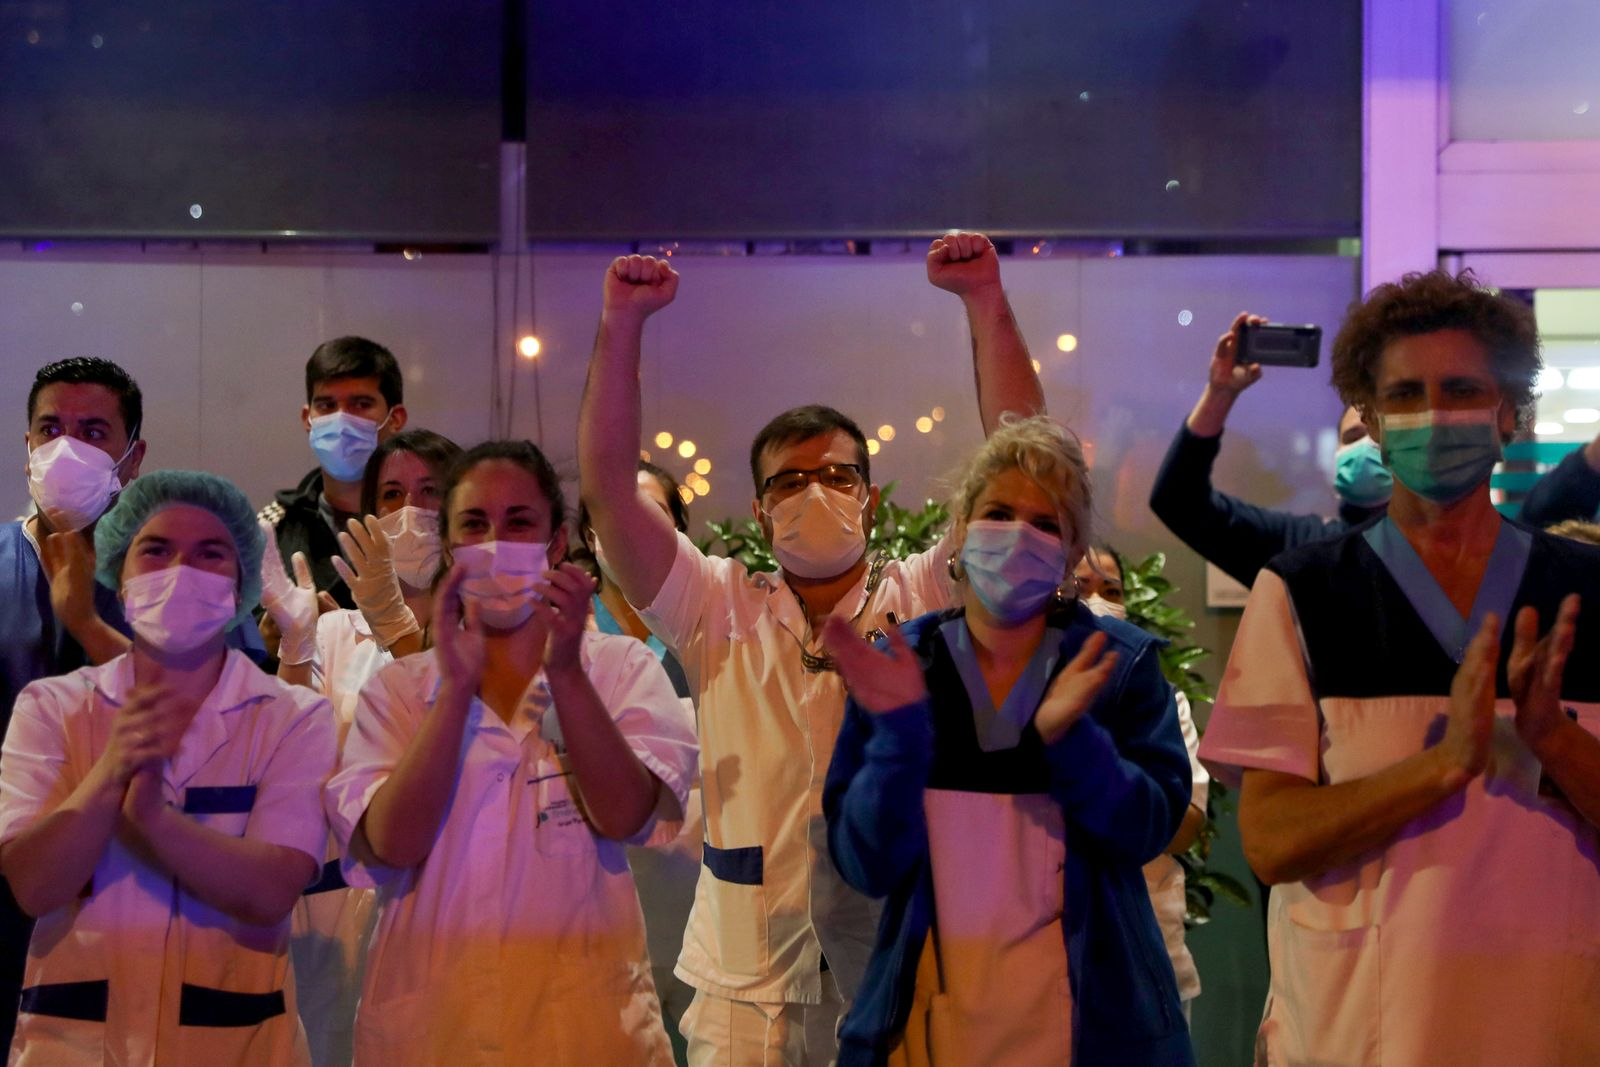 Medical staff from the Fundacion Jimenez Diaz hospital applaud as neighbours applaud from their balconies in support for healthcare workers, during the coronavirus disease (COVID-19) outbreak, in Madrid